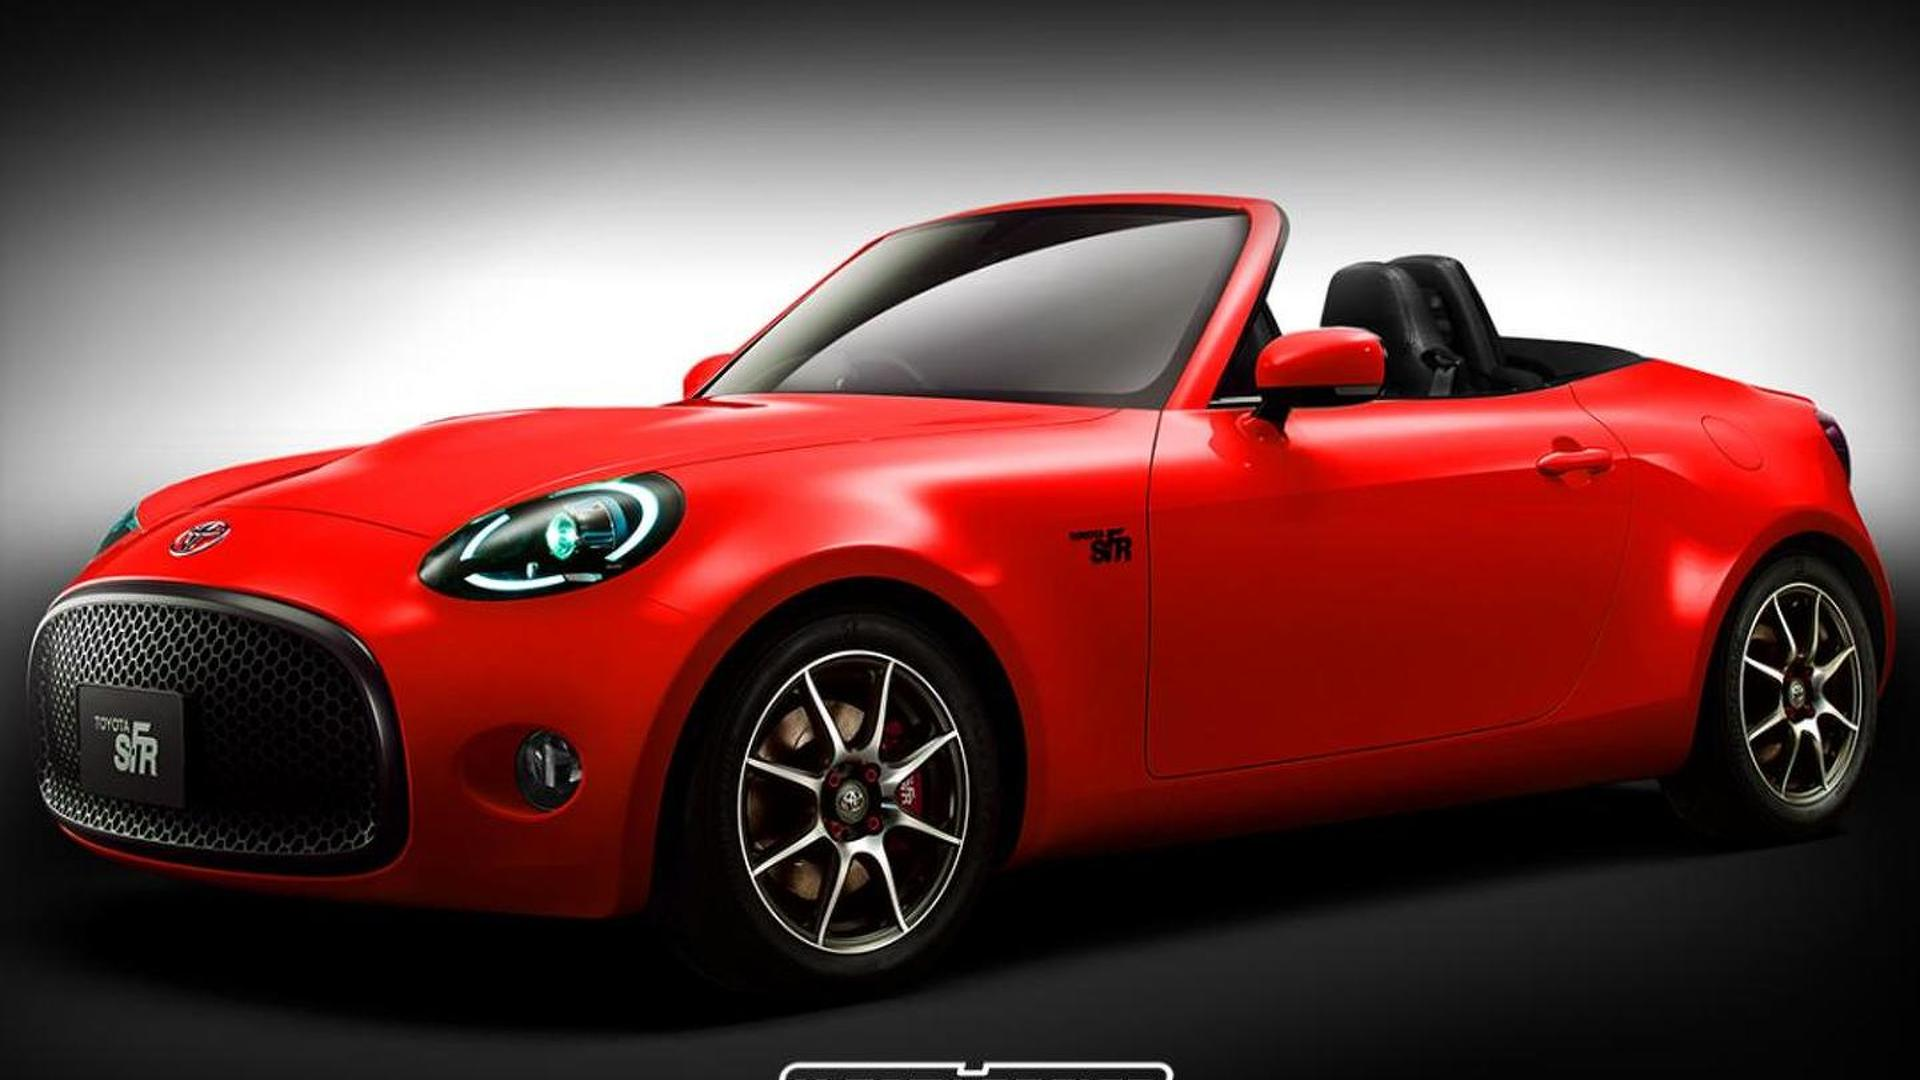 Toyota S-FR Roadster rendered, but will it happen?